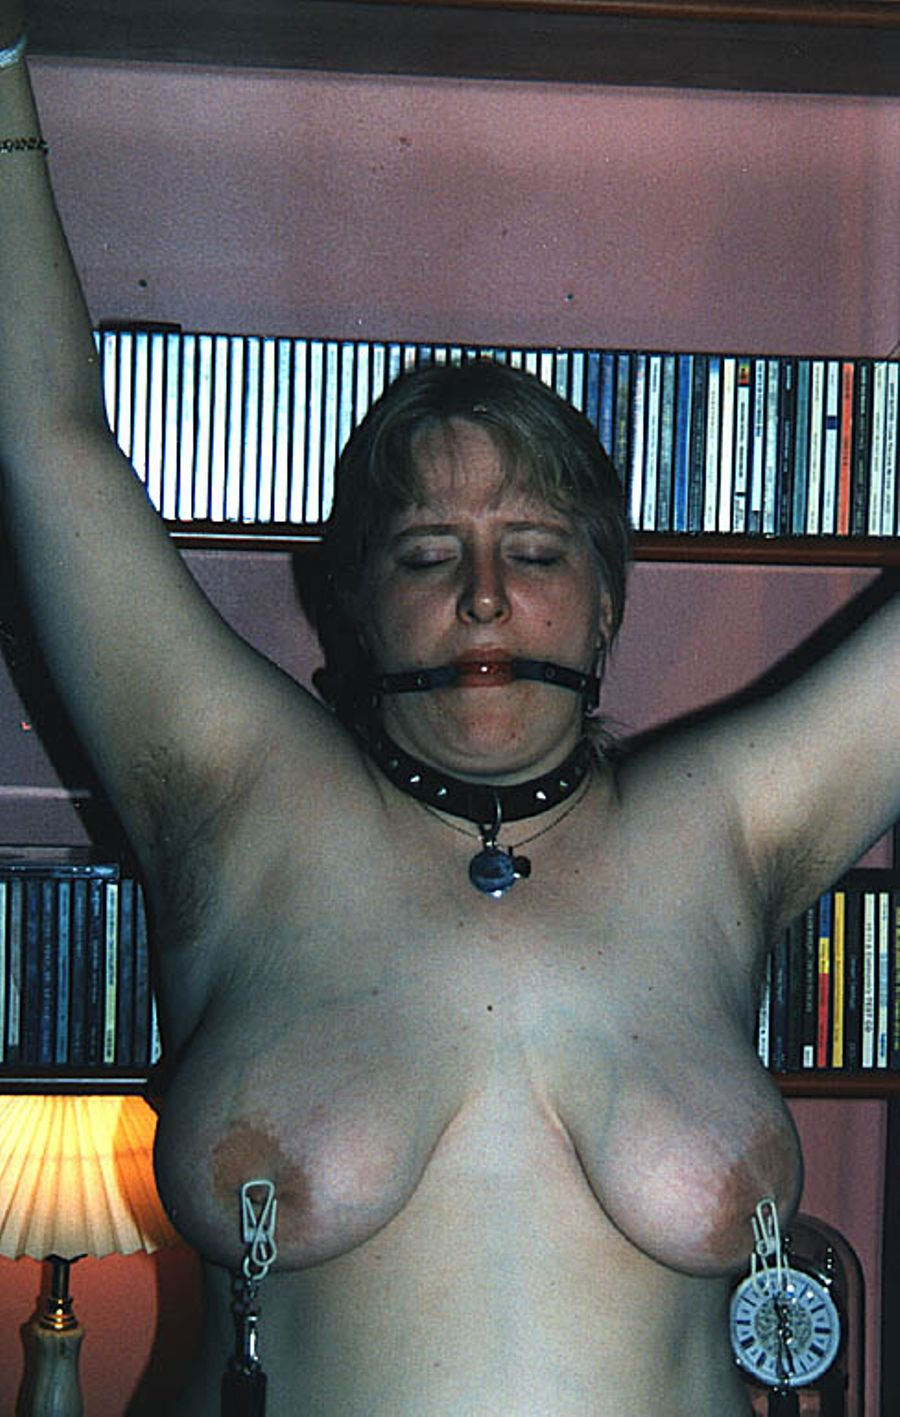 Bdsm albums exposed picture